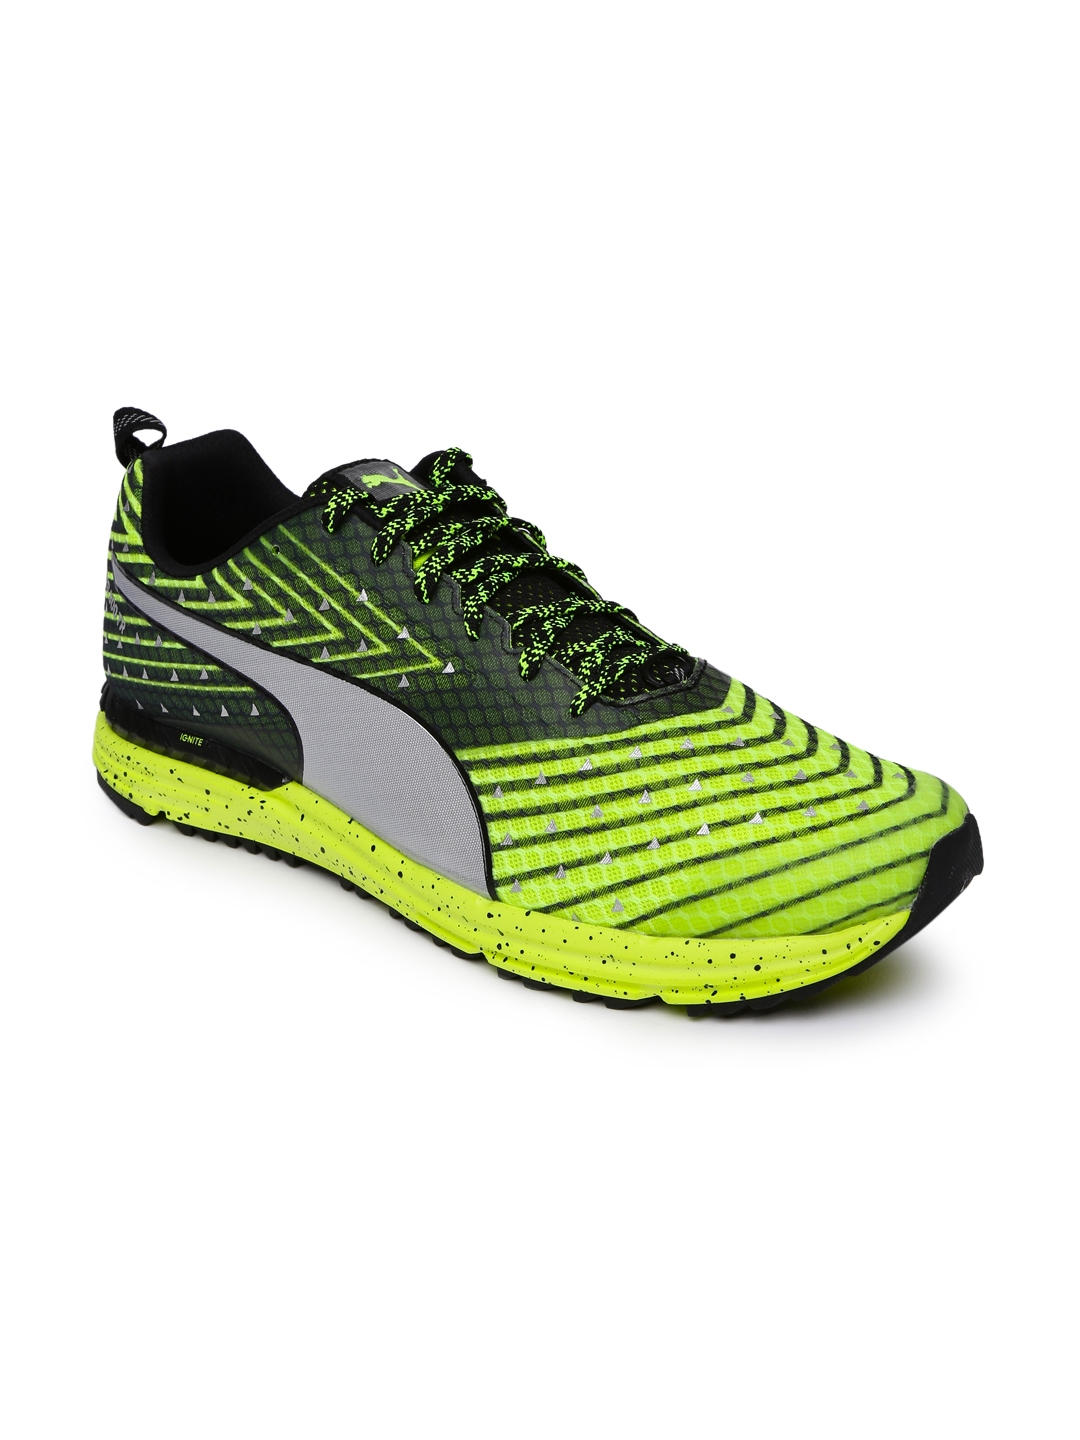 cb6c2b66dfa Buy Puma Men Green Speed 300 TR IGNITE Running Shoes - Sports Shoes ...